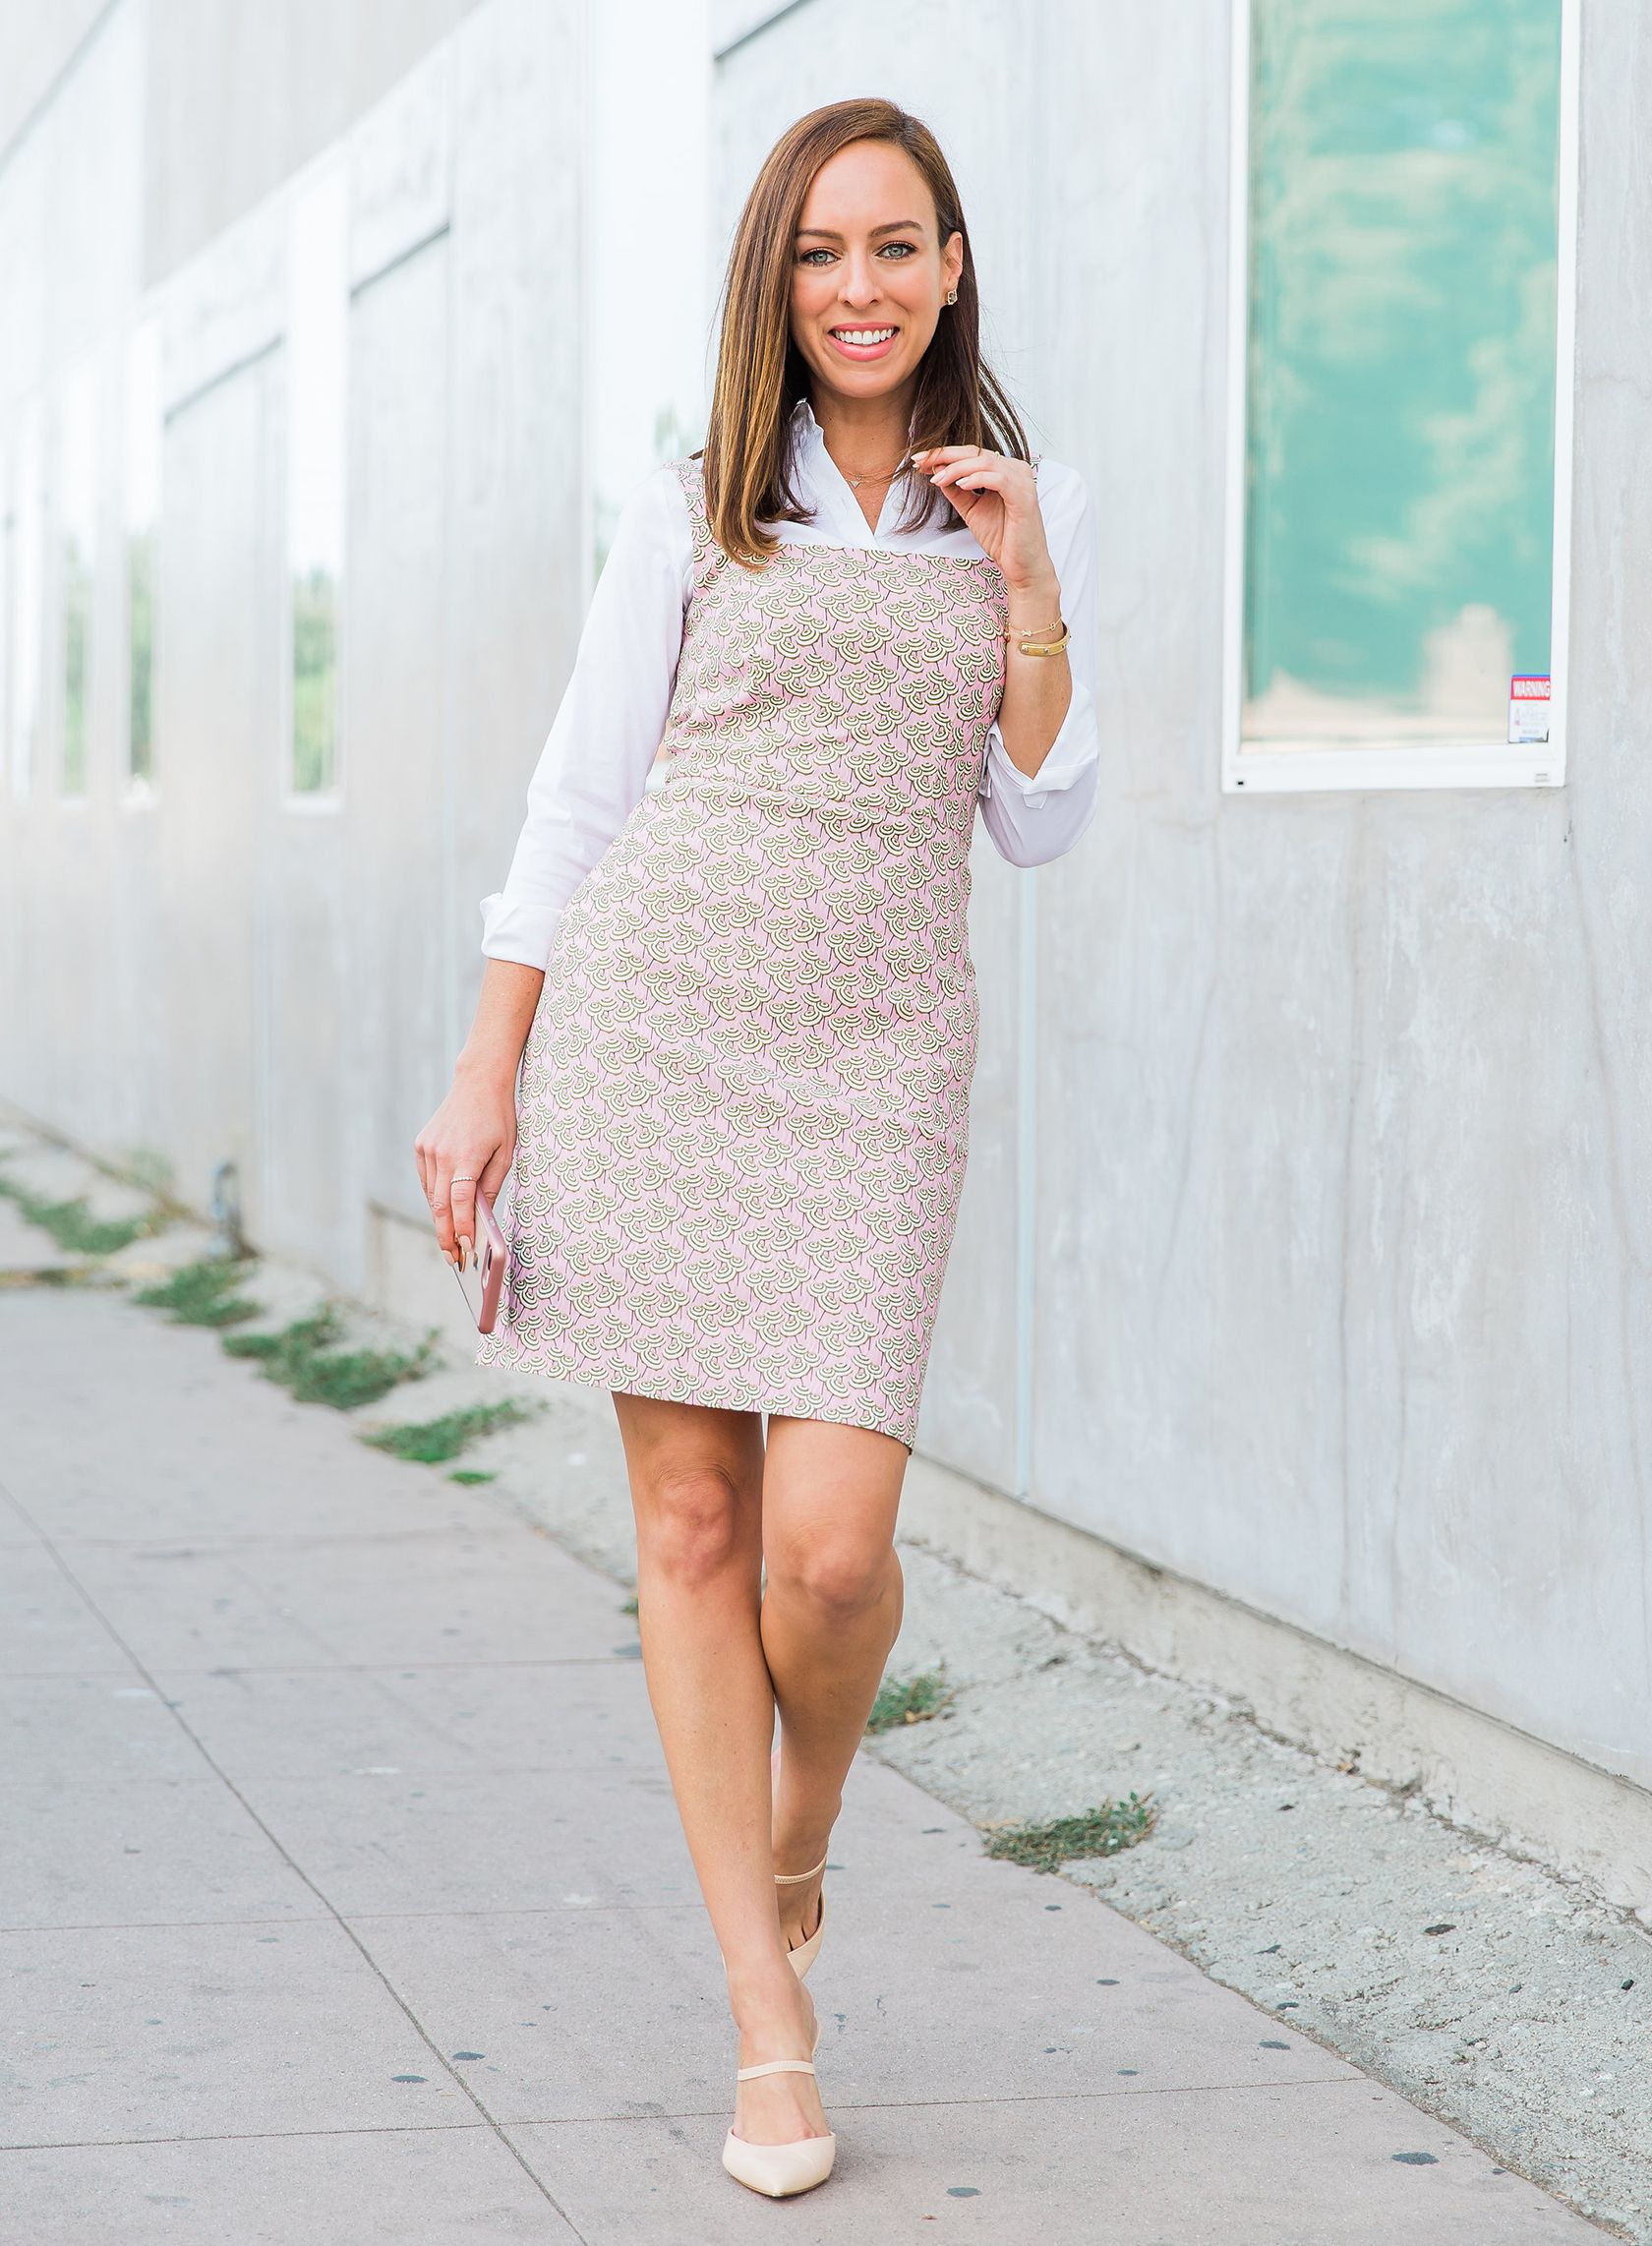 dd35fbdea3b7 Sydne Style shows office outfit ideas in j crew printed sheath dress  #workoutfit #officeoutfit